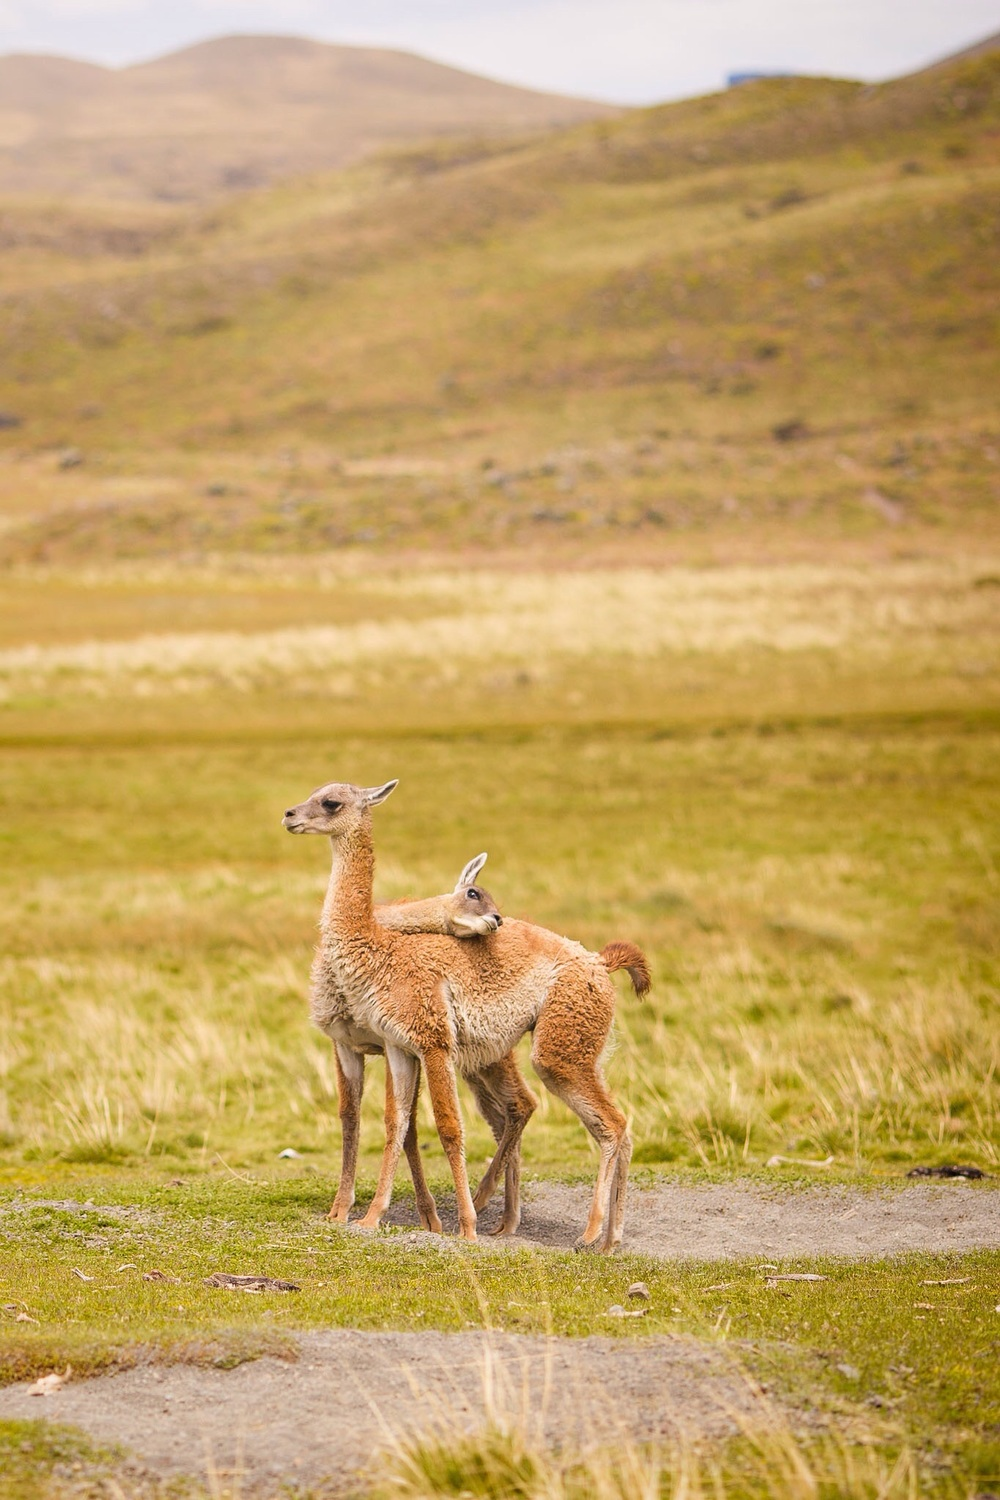 Wedding-Travellers-Overlanding-Destination-Wedding-Chile-Torres-del-Paine-cute-guanaco-llama-lama-baby